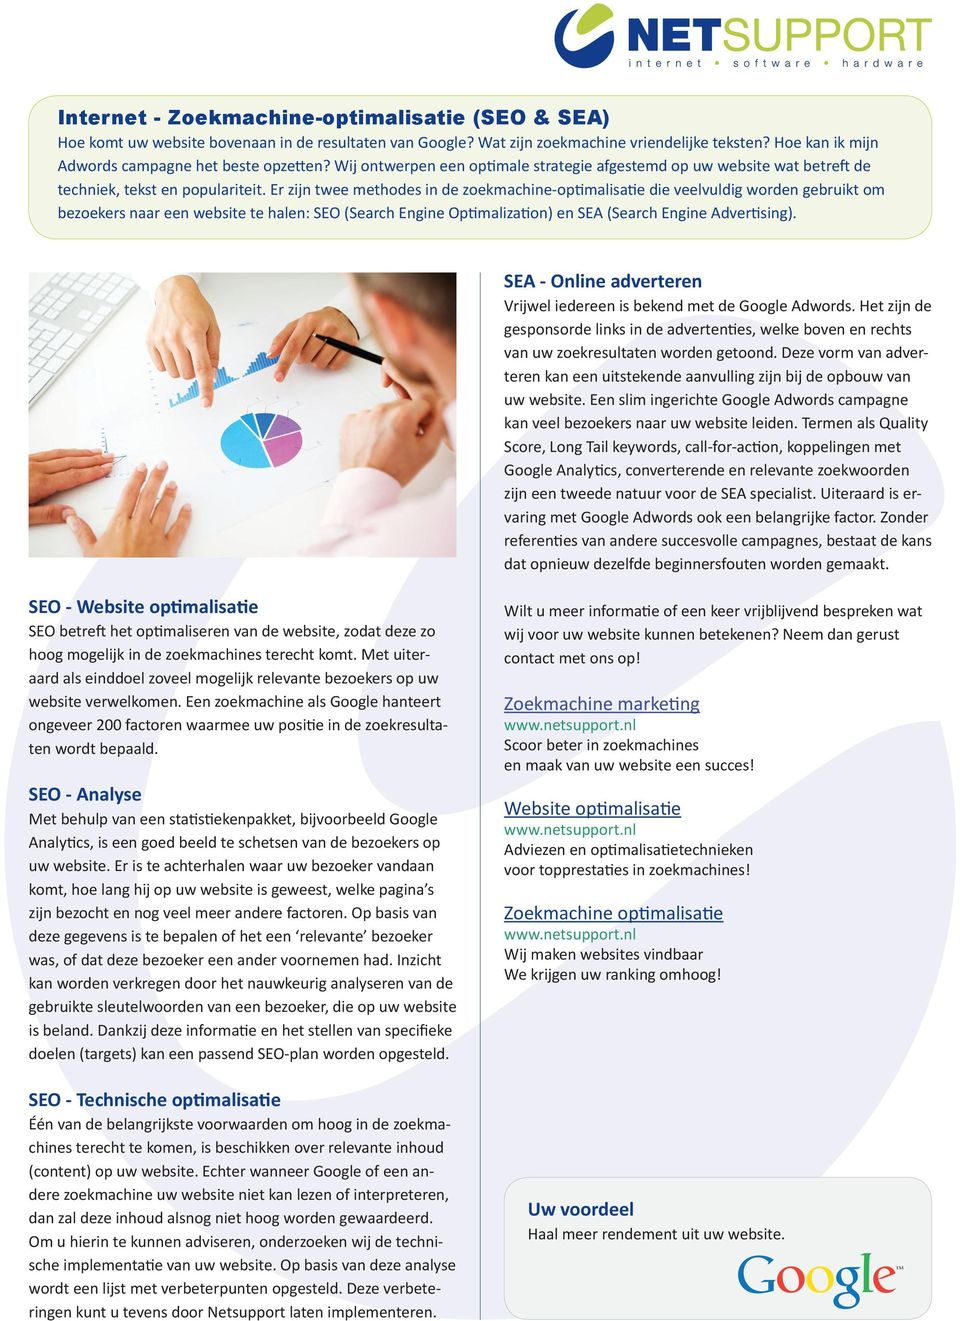 Er zijn twee methodes in de zoekmachine-optimalisatie die veelvuldig worden gebruikt om bezoekers naar een website te halen: SEO (Search Engine Optimalization) en SEA (Search Engine Advertising).